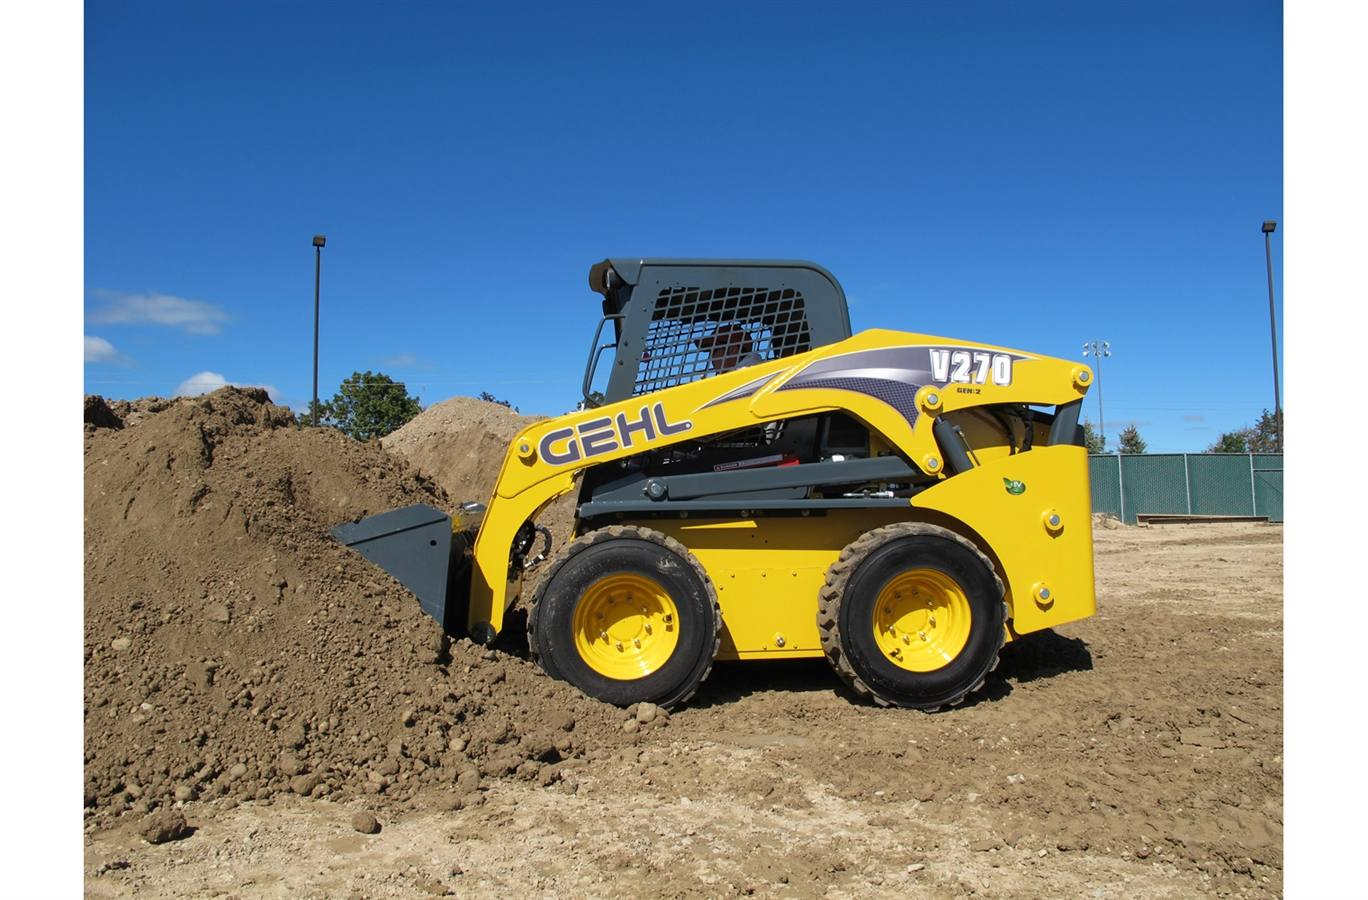 2018 Gehl V270 GEN:2 Vertical-Lift Skid Loader for sale in